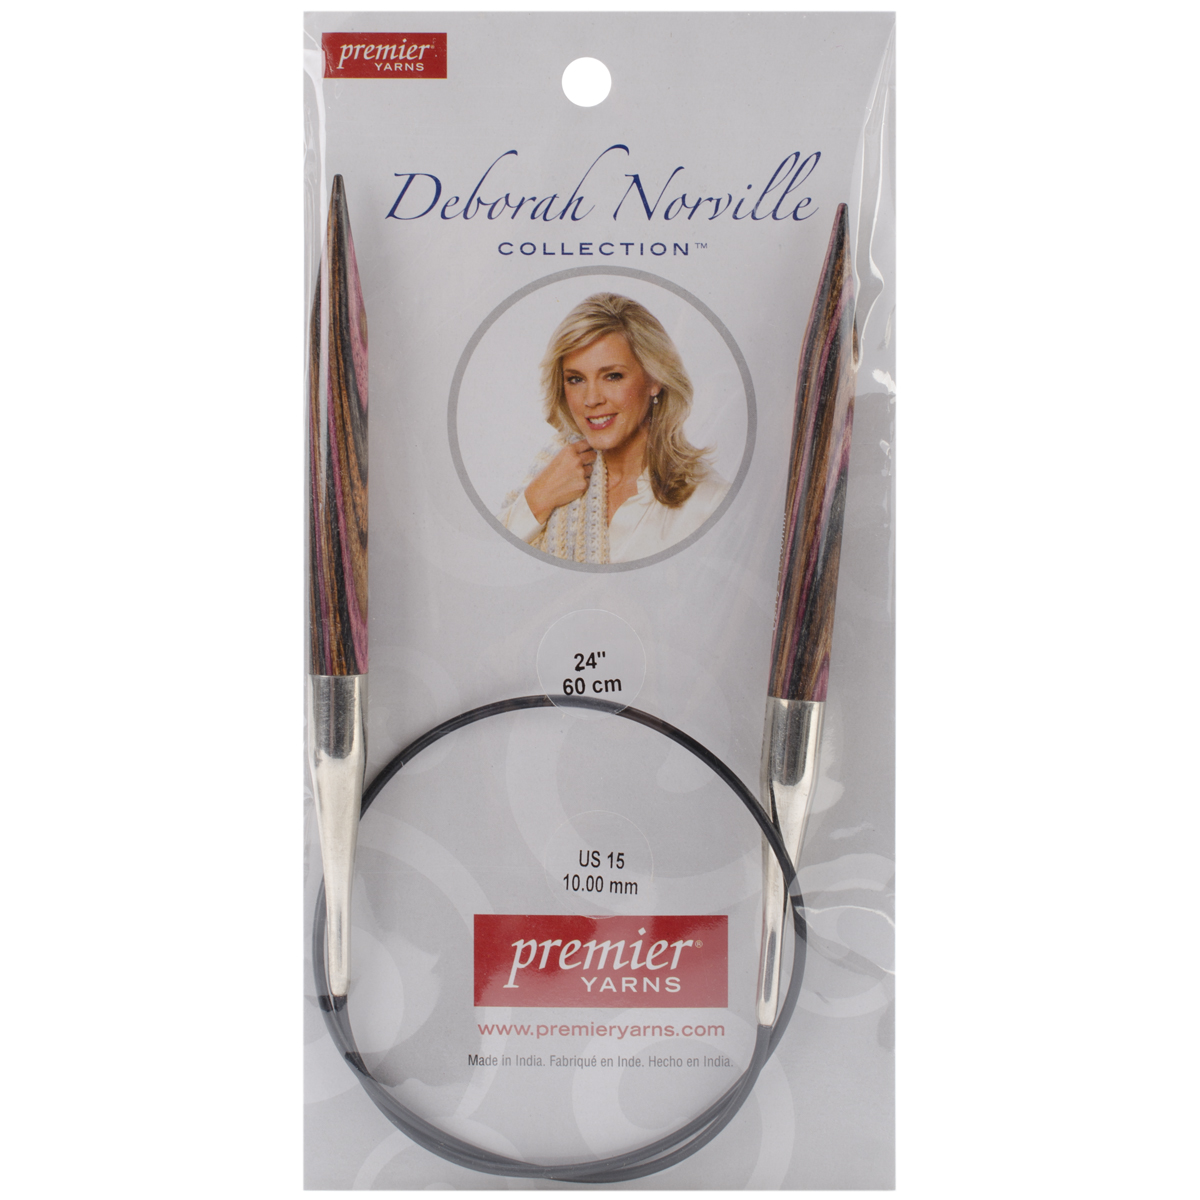 Premier Yarns Deborah Norville Fixed Circular Needles, 24-Inch, 15/10.0mm Multi-Colored